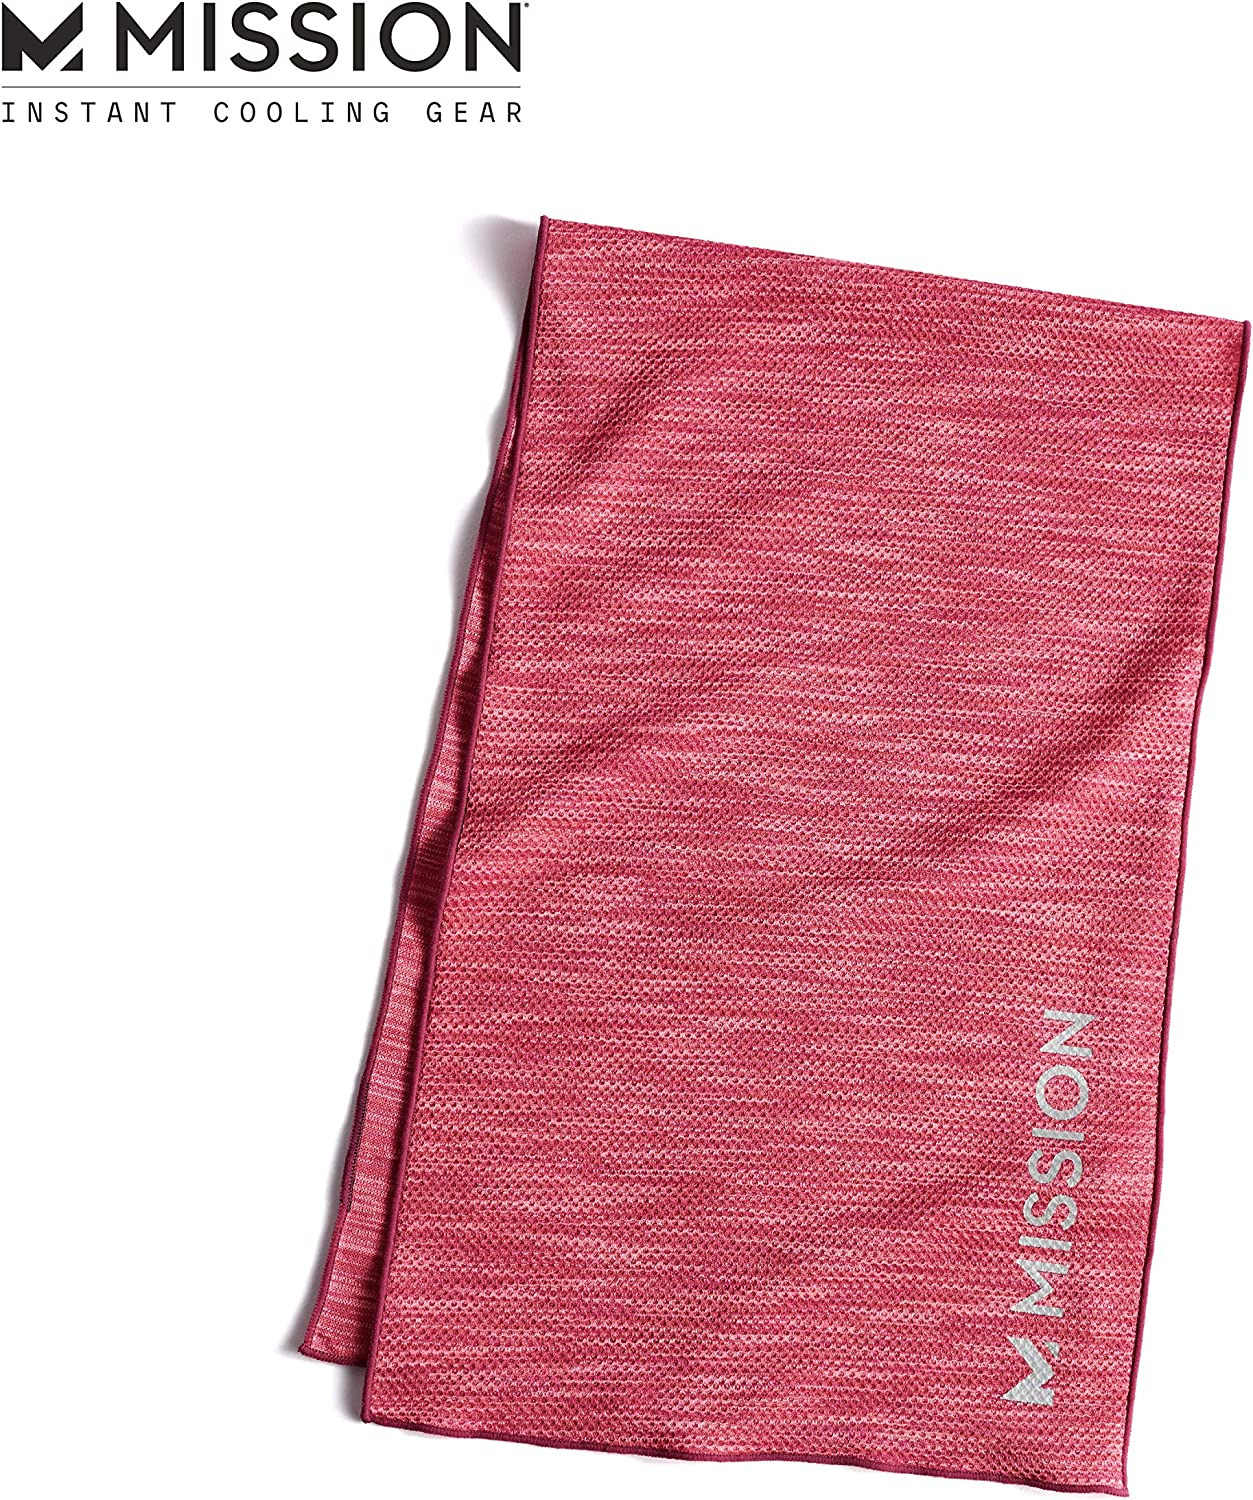 "MISSION Lite-Knit Cooling Towel Instant Evaporative Cooling, Lightweight Knit Fabric, Cools Instantly When Wet, UPF 50 Sun Protection, Yoga, Golf, Gym, Neck, 10"" x 33"""